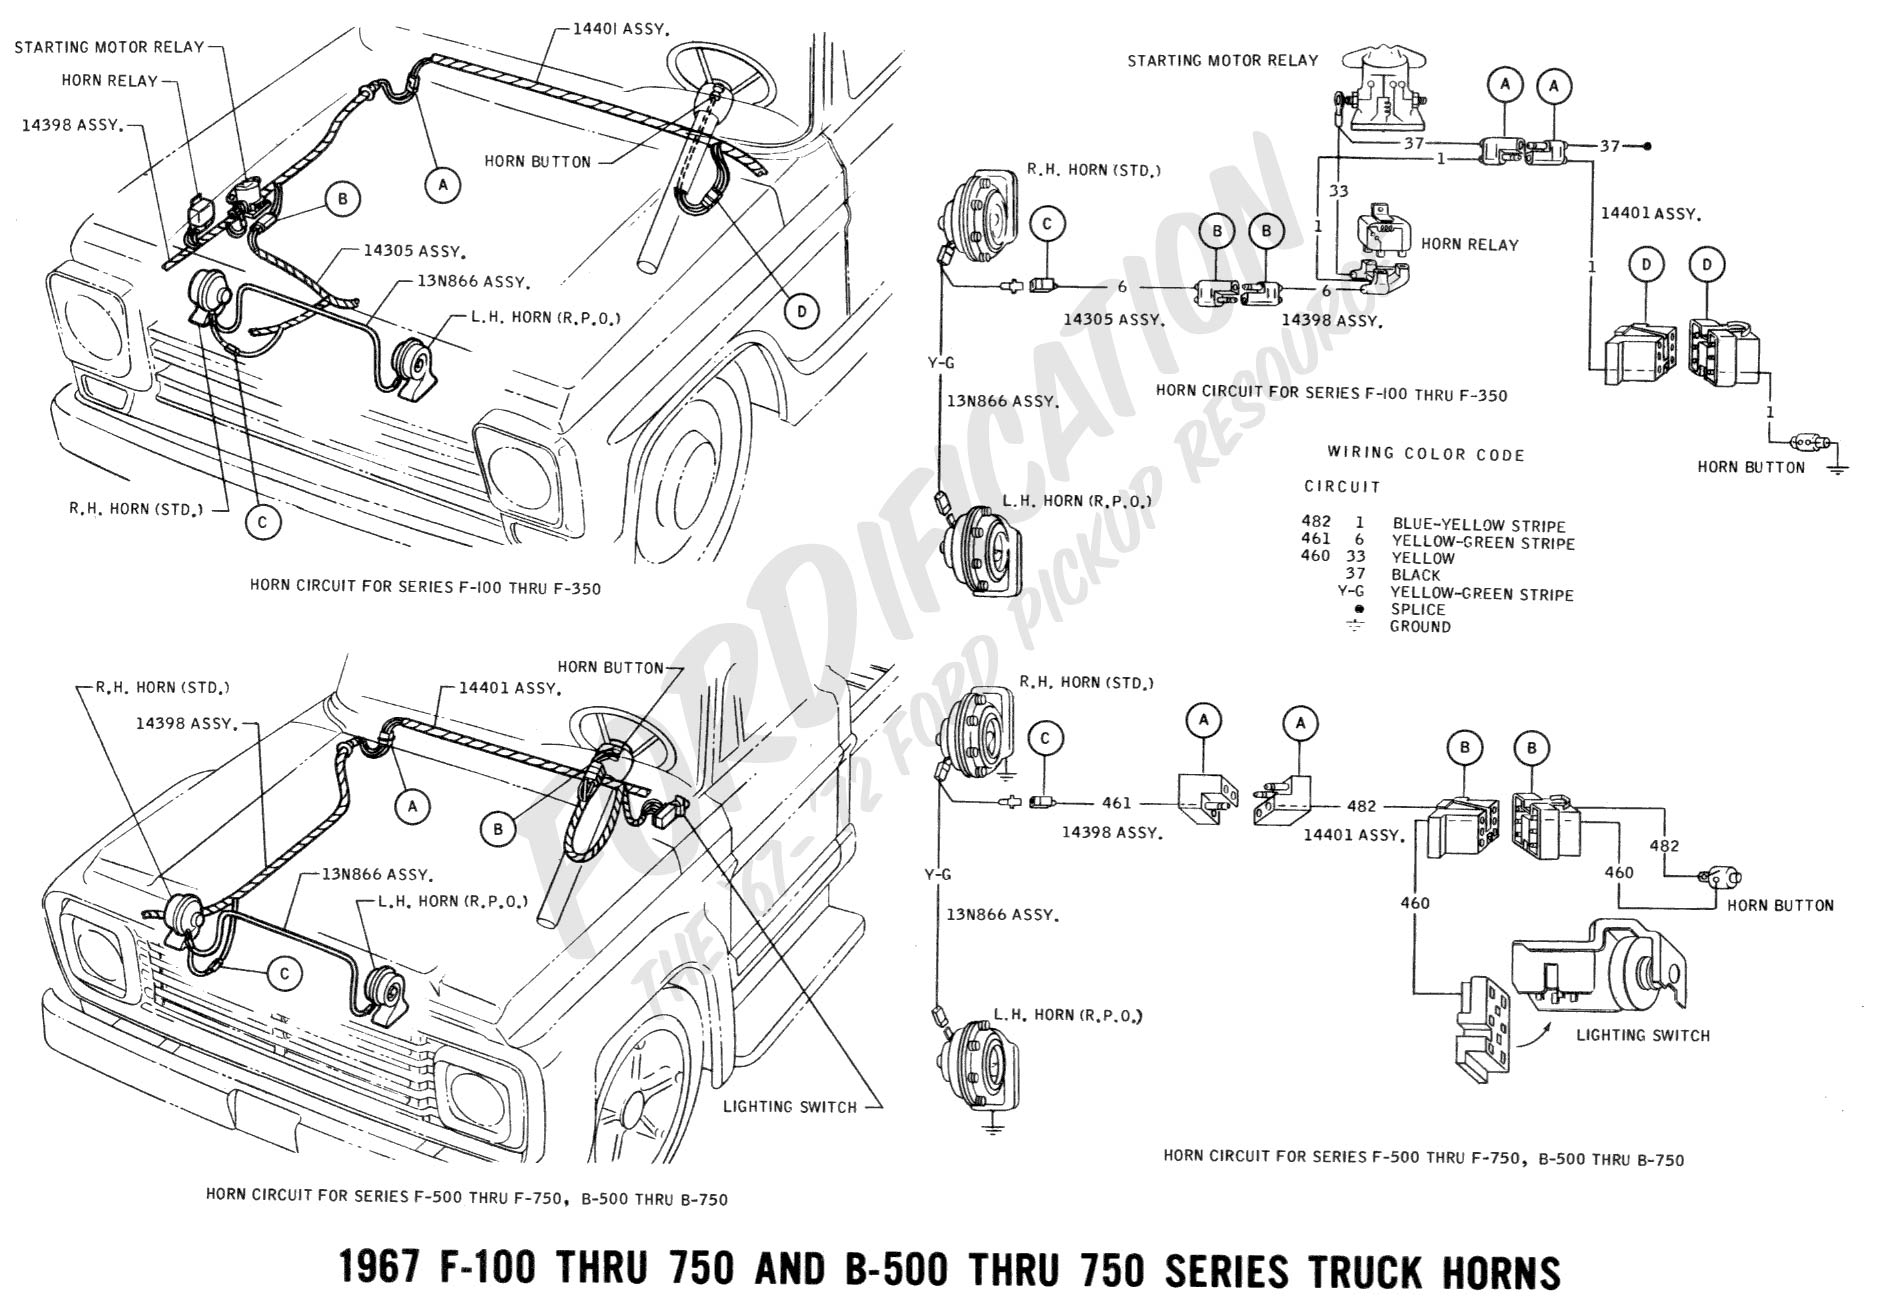 Malibu Radio Wiring Diagram Additionally 1965 Chevelle Wiring Diagram